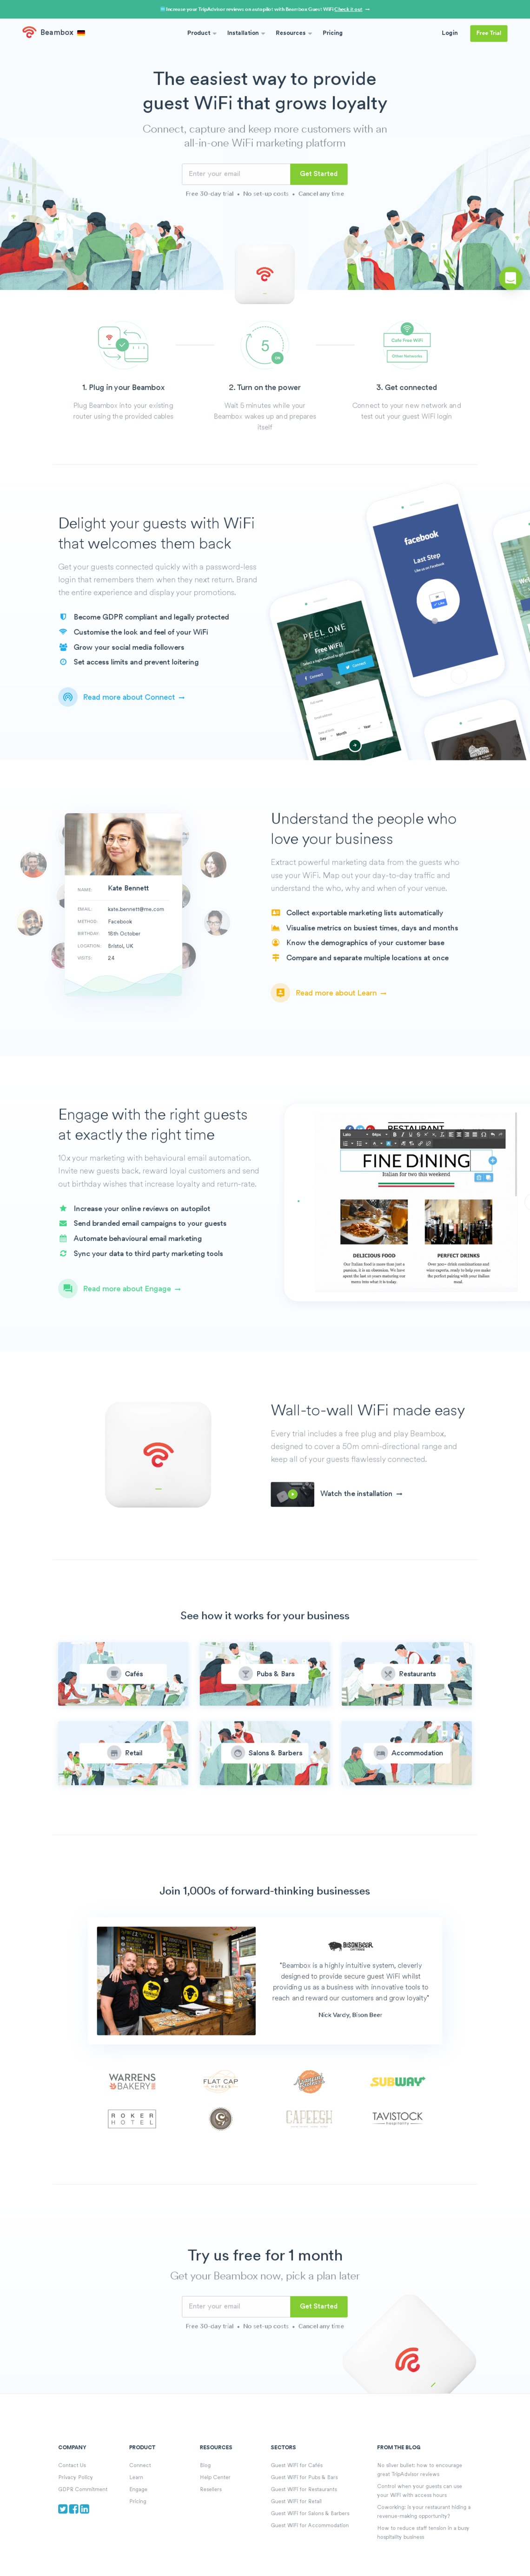 Guest WiFi Marketing for Small Business | Beambox